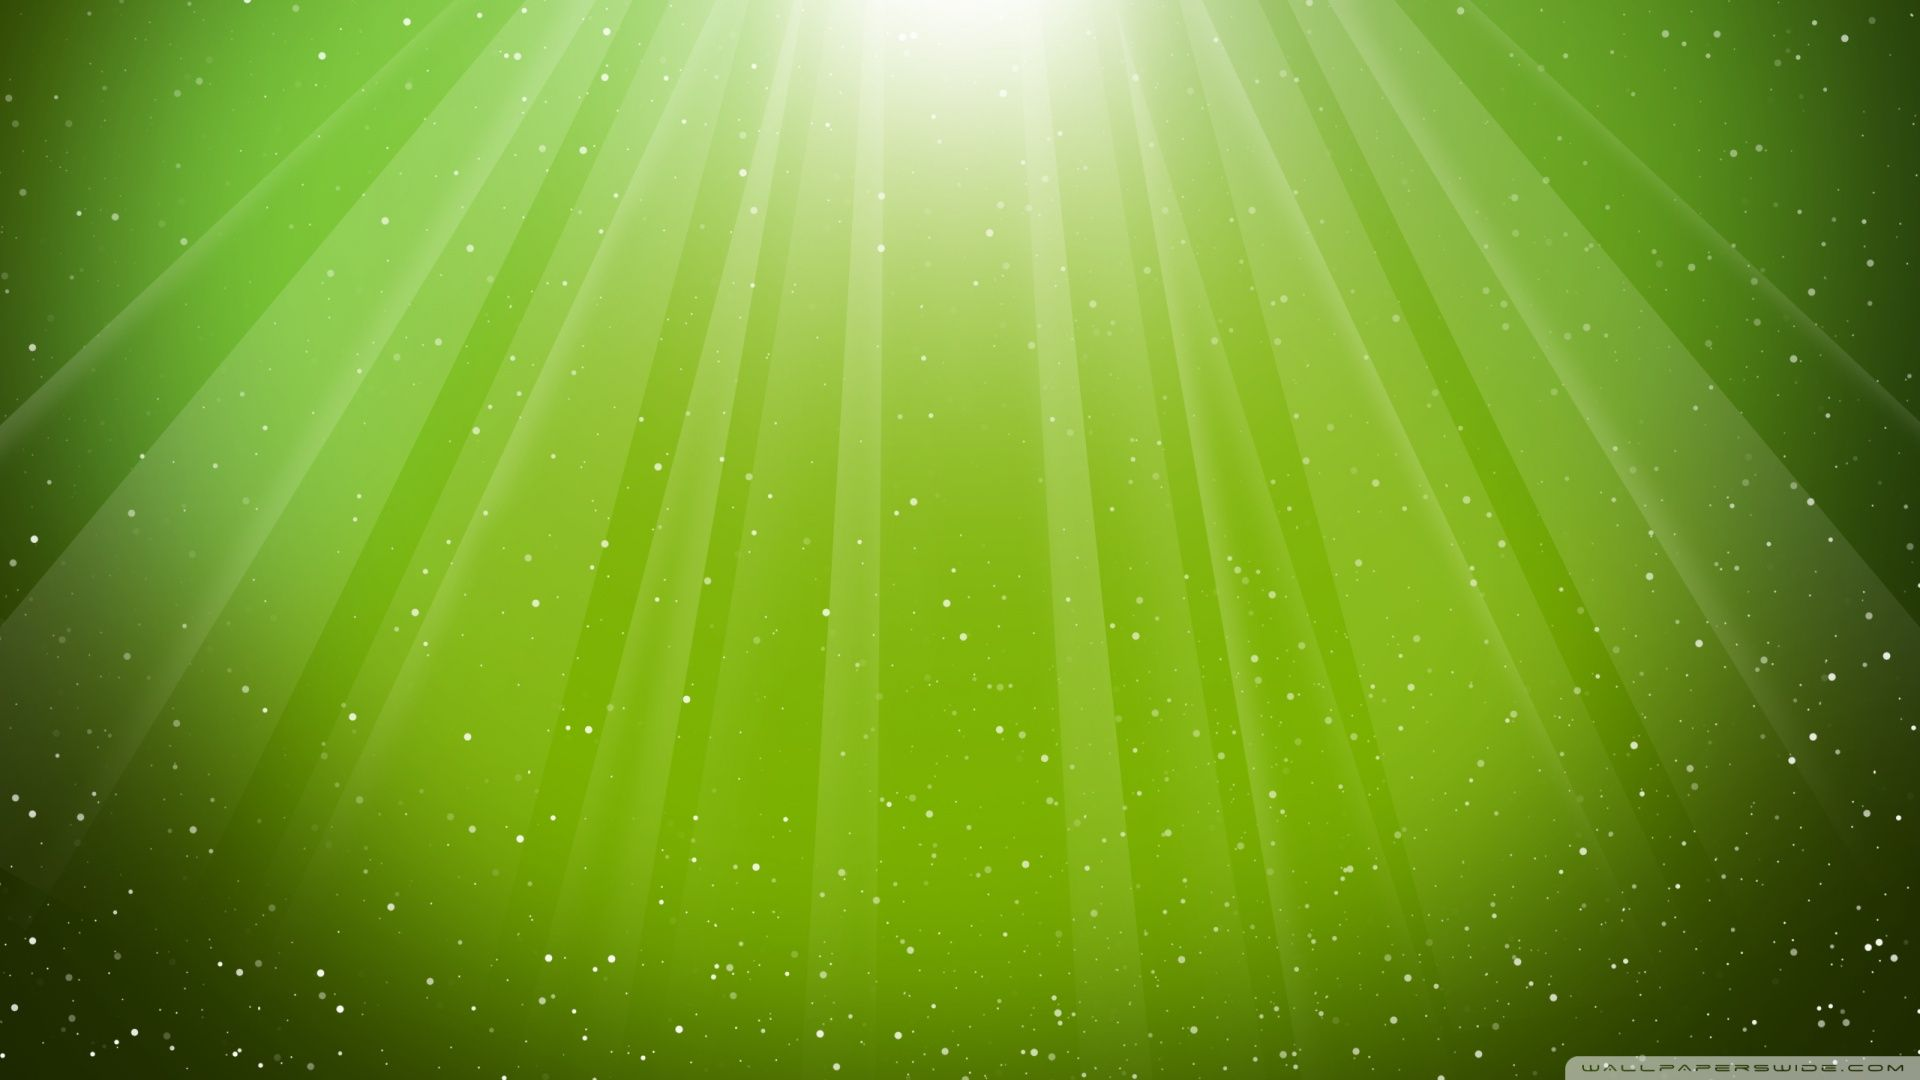 neon green design backgrounds 042 dekstop hd wallpapers wfz | places